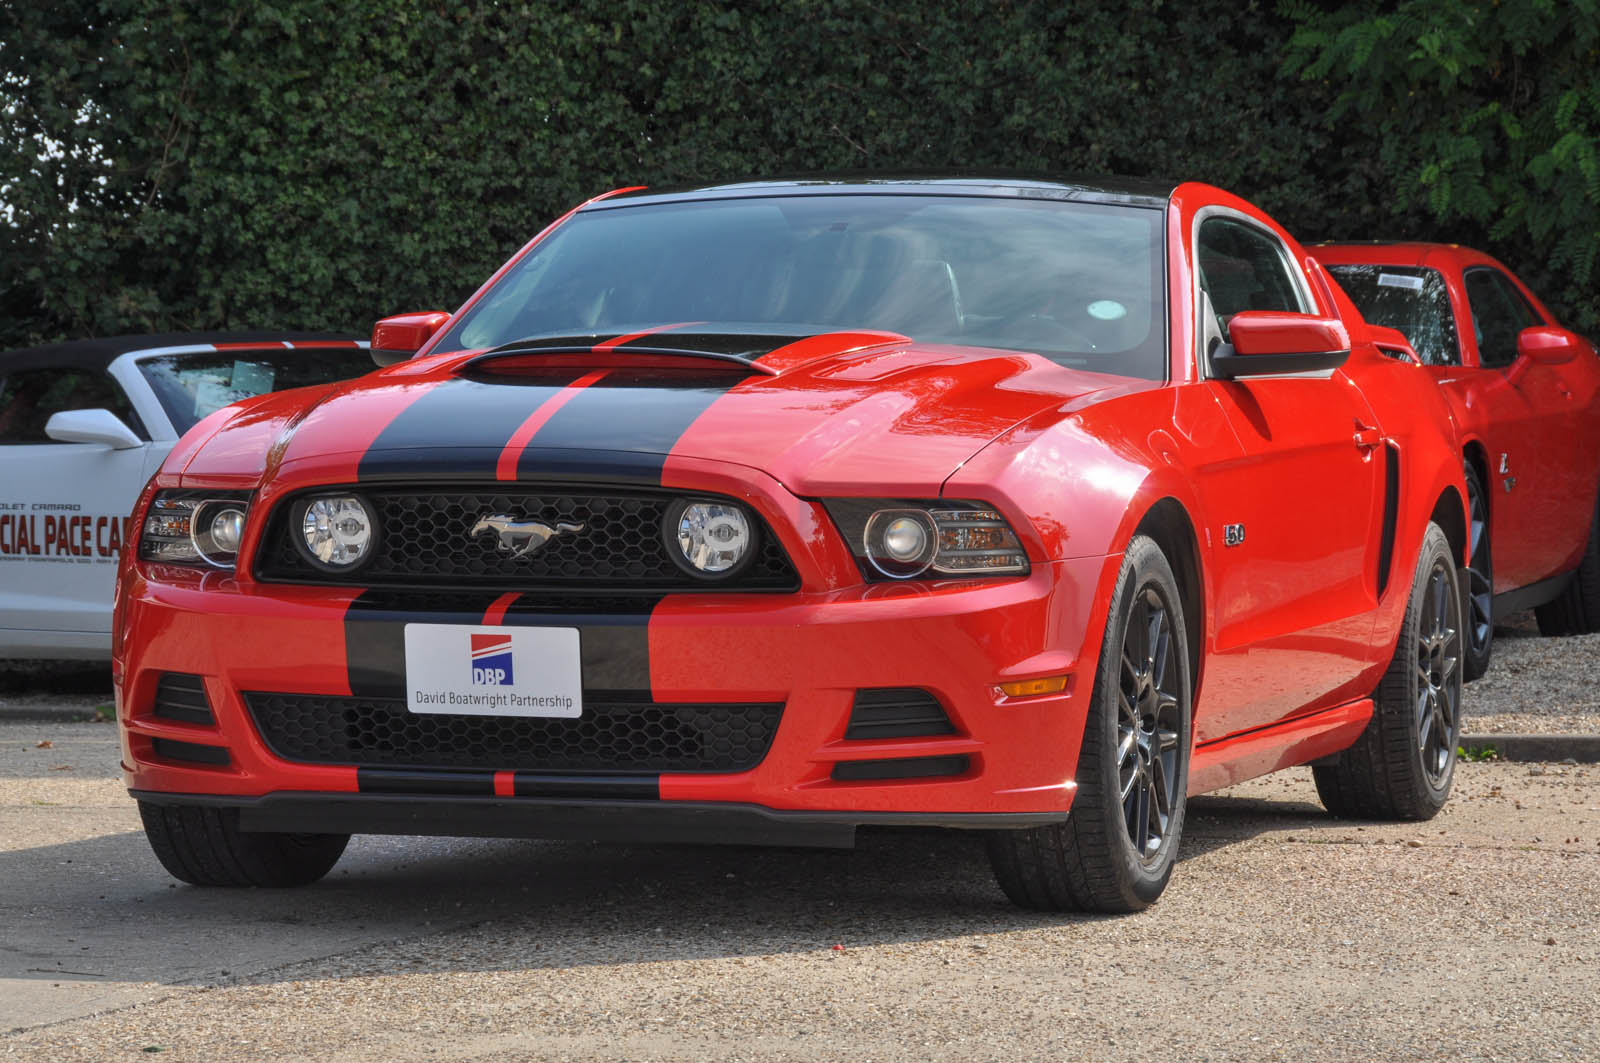 2014 ford mustang for sale in the uk gt 5 0 litre v8 auto premium. Black Bedroom Furniture Sets. Home Design Ideas